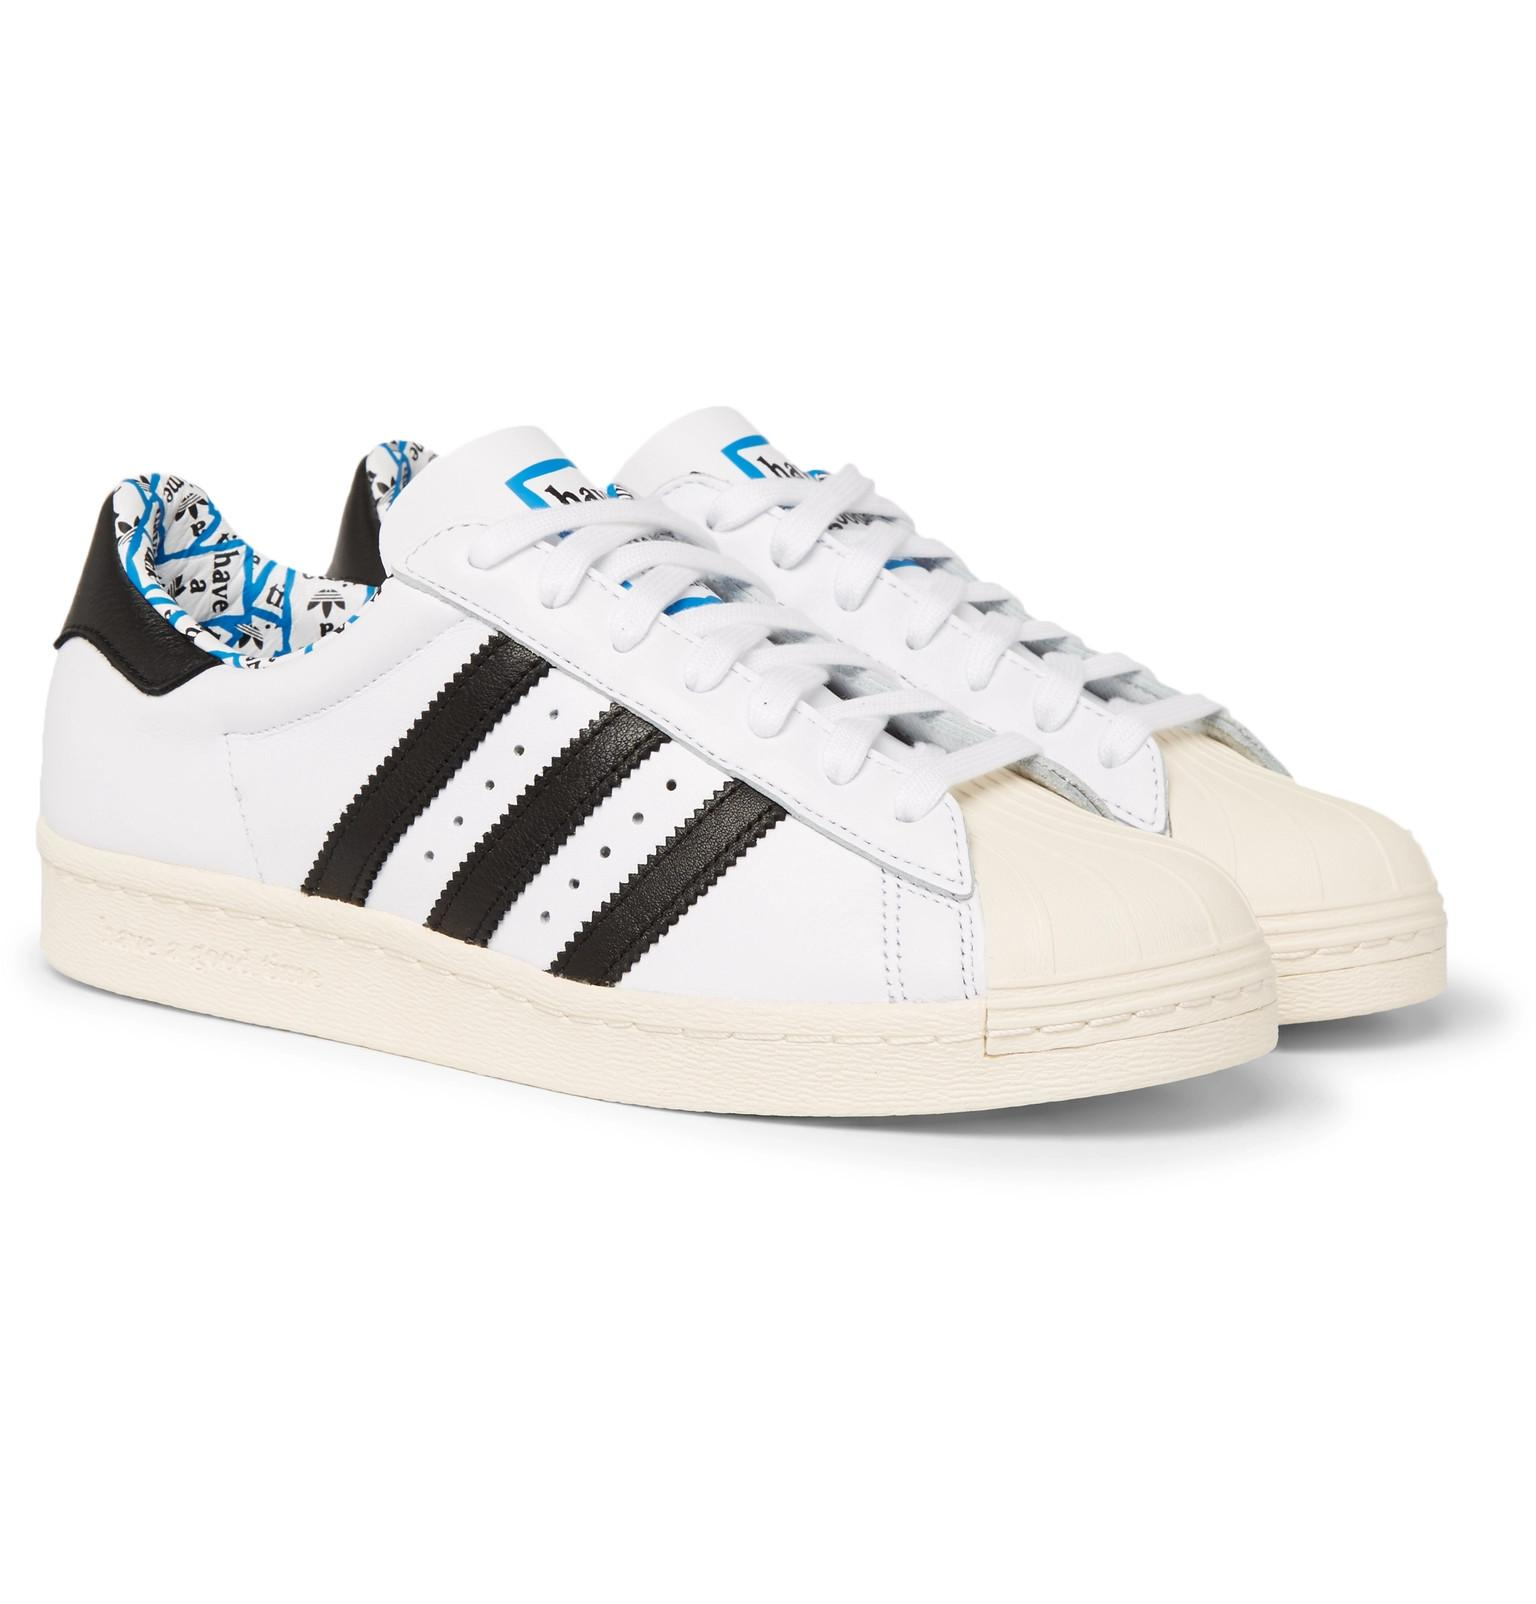 befb91f8ac66 Lyst - adidas Originals + Have A Good Time Superstar Leather ...